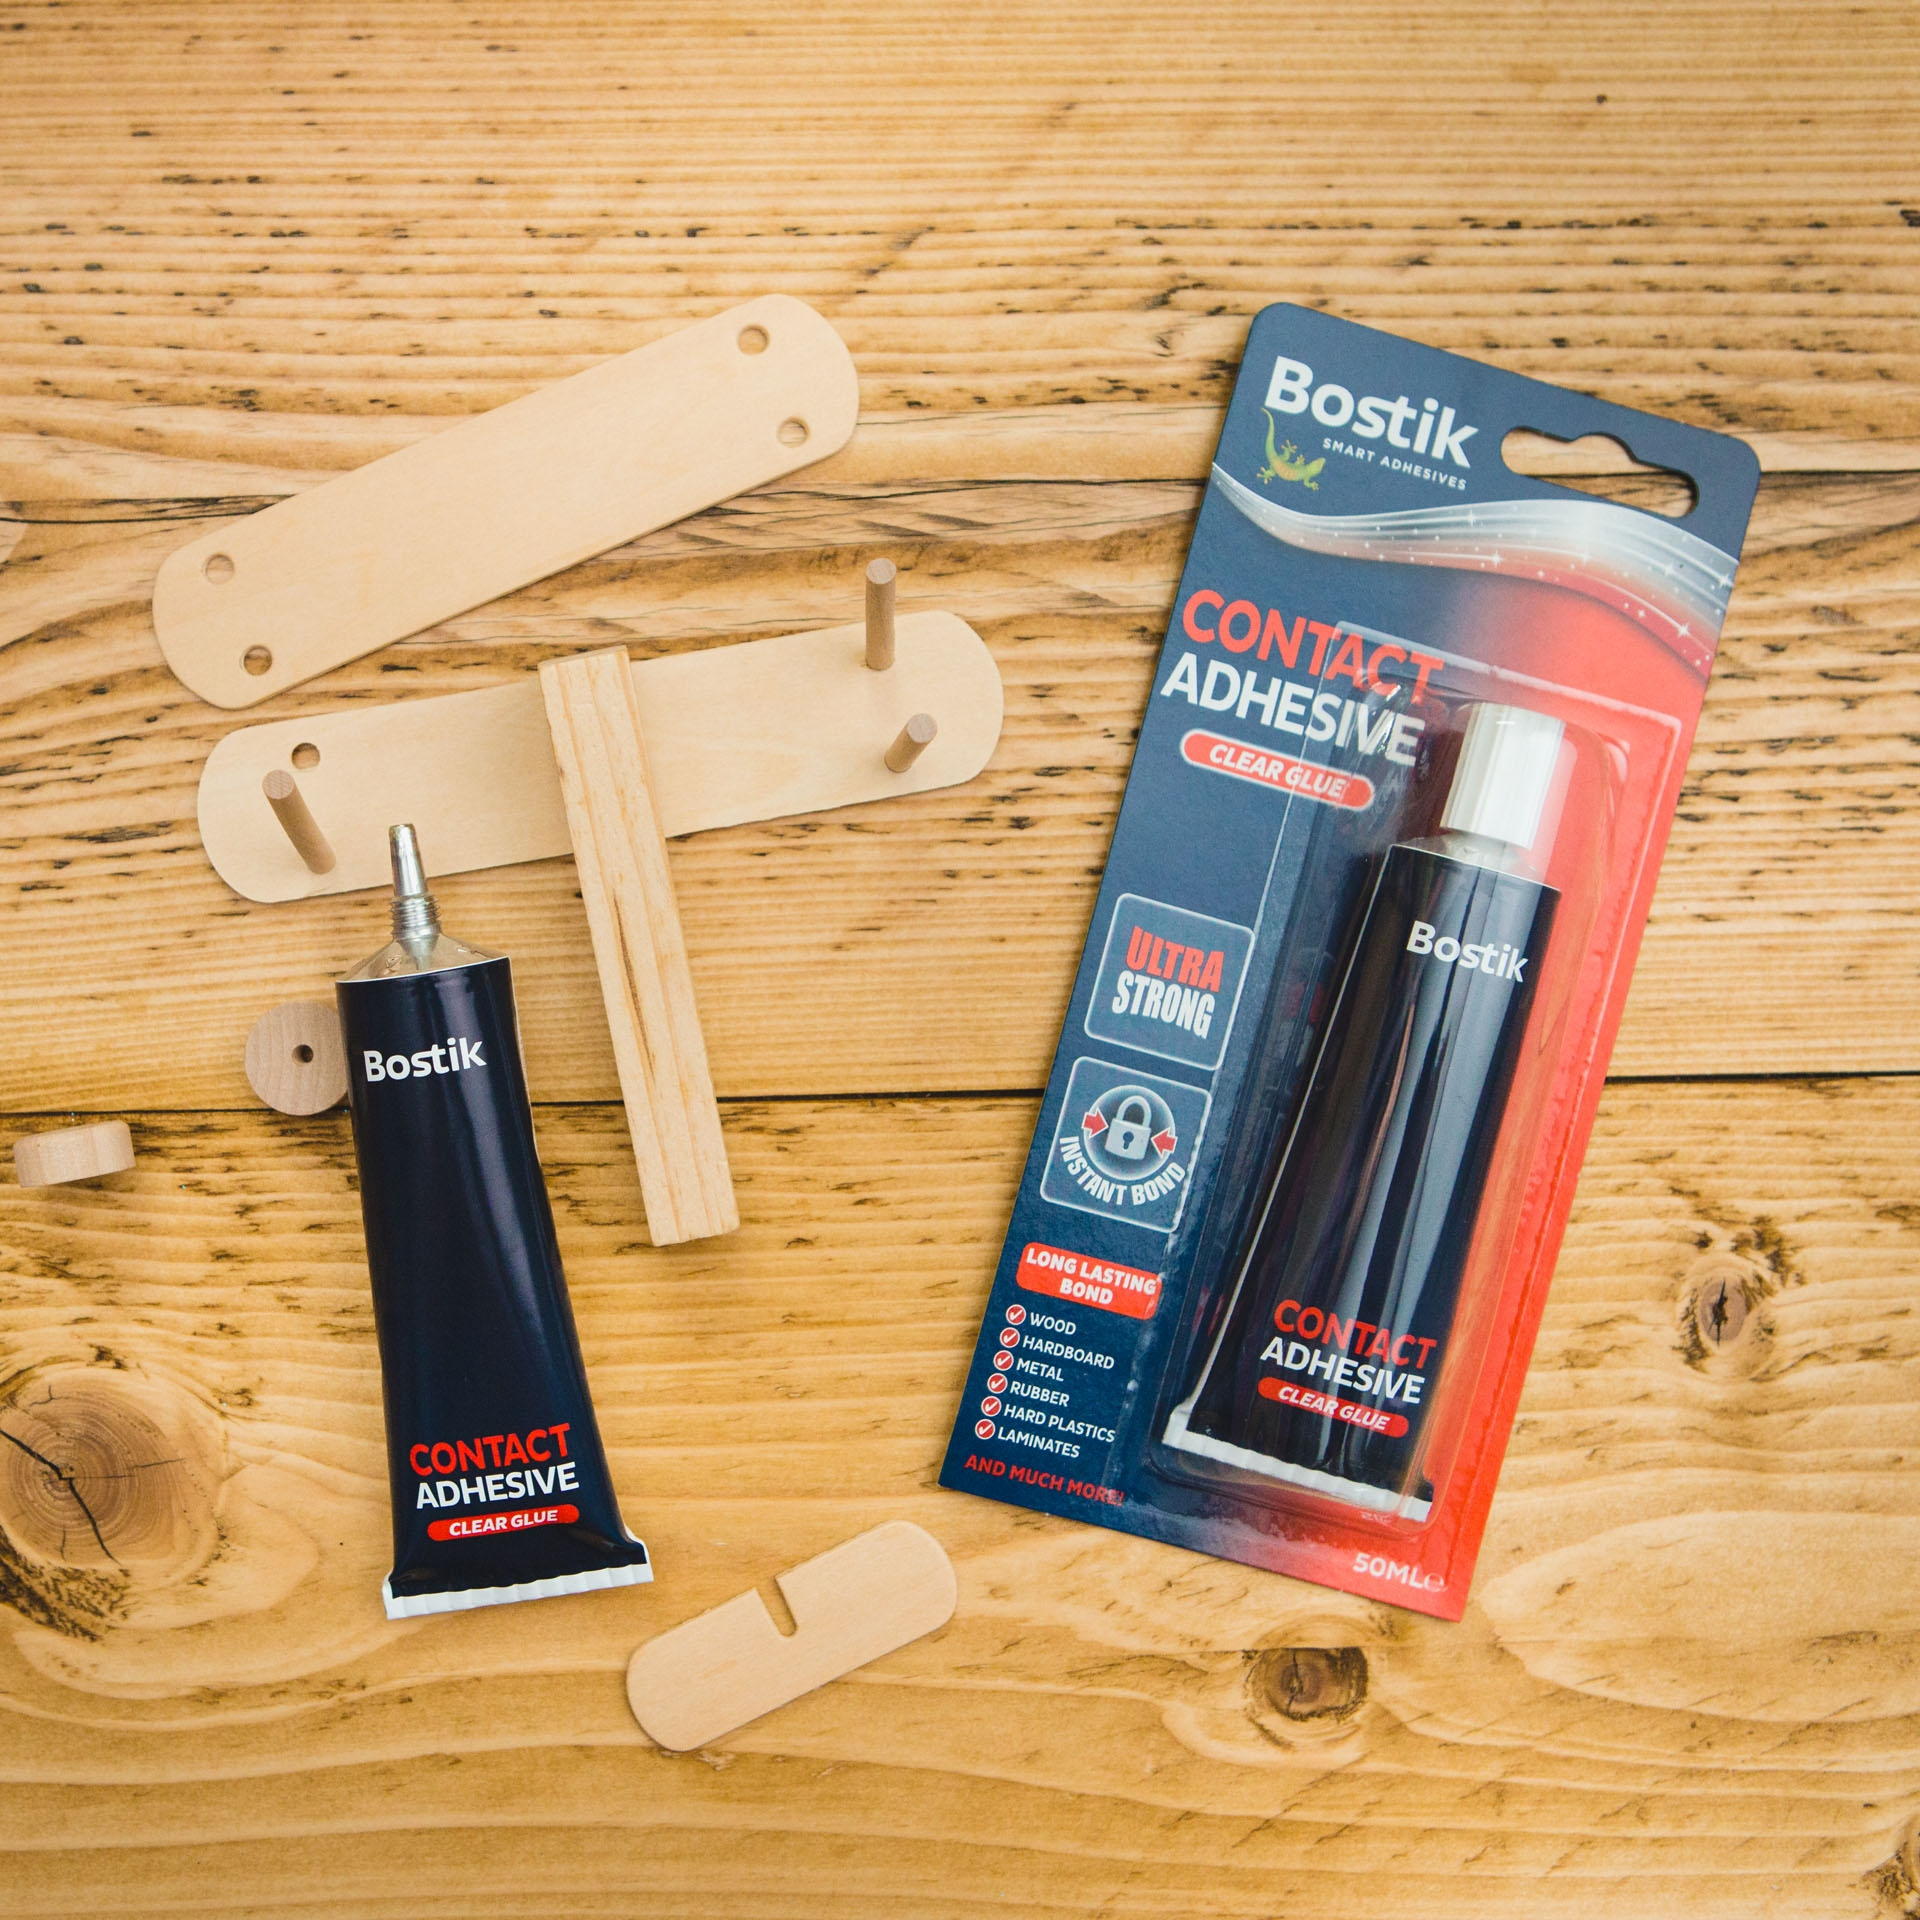 Bostik DIY Contact Adhesive United Kingdom Impression